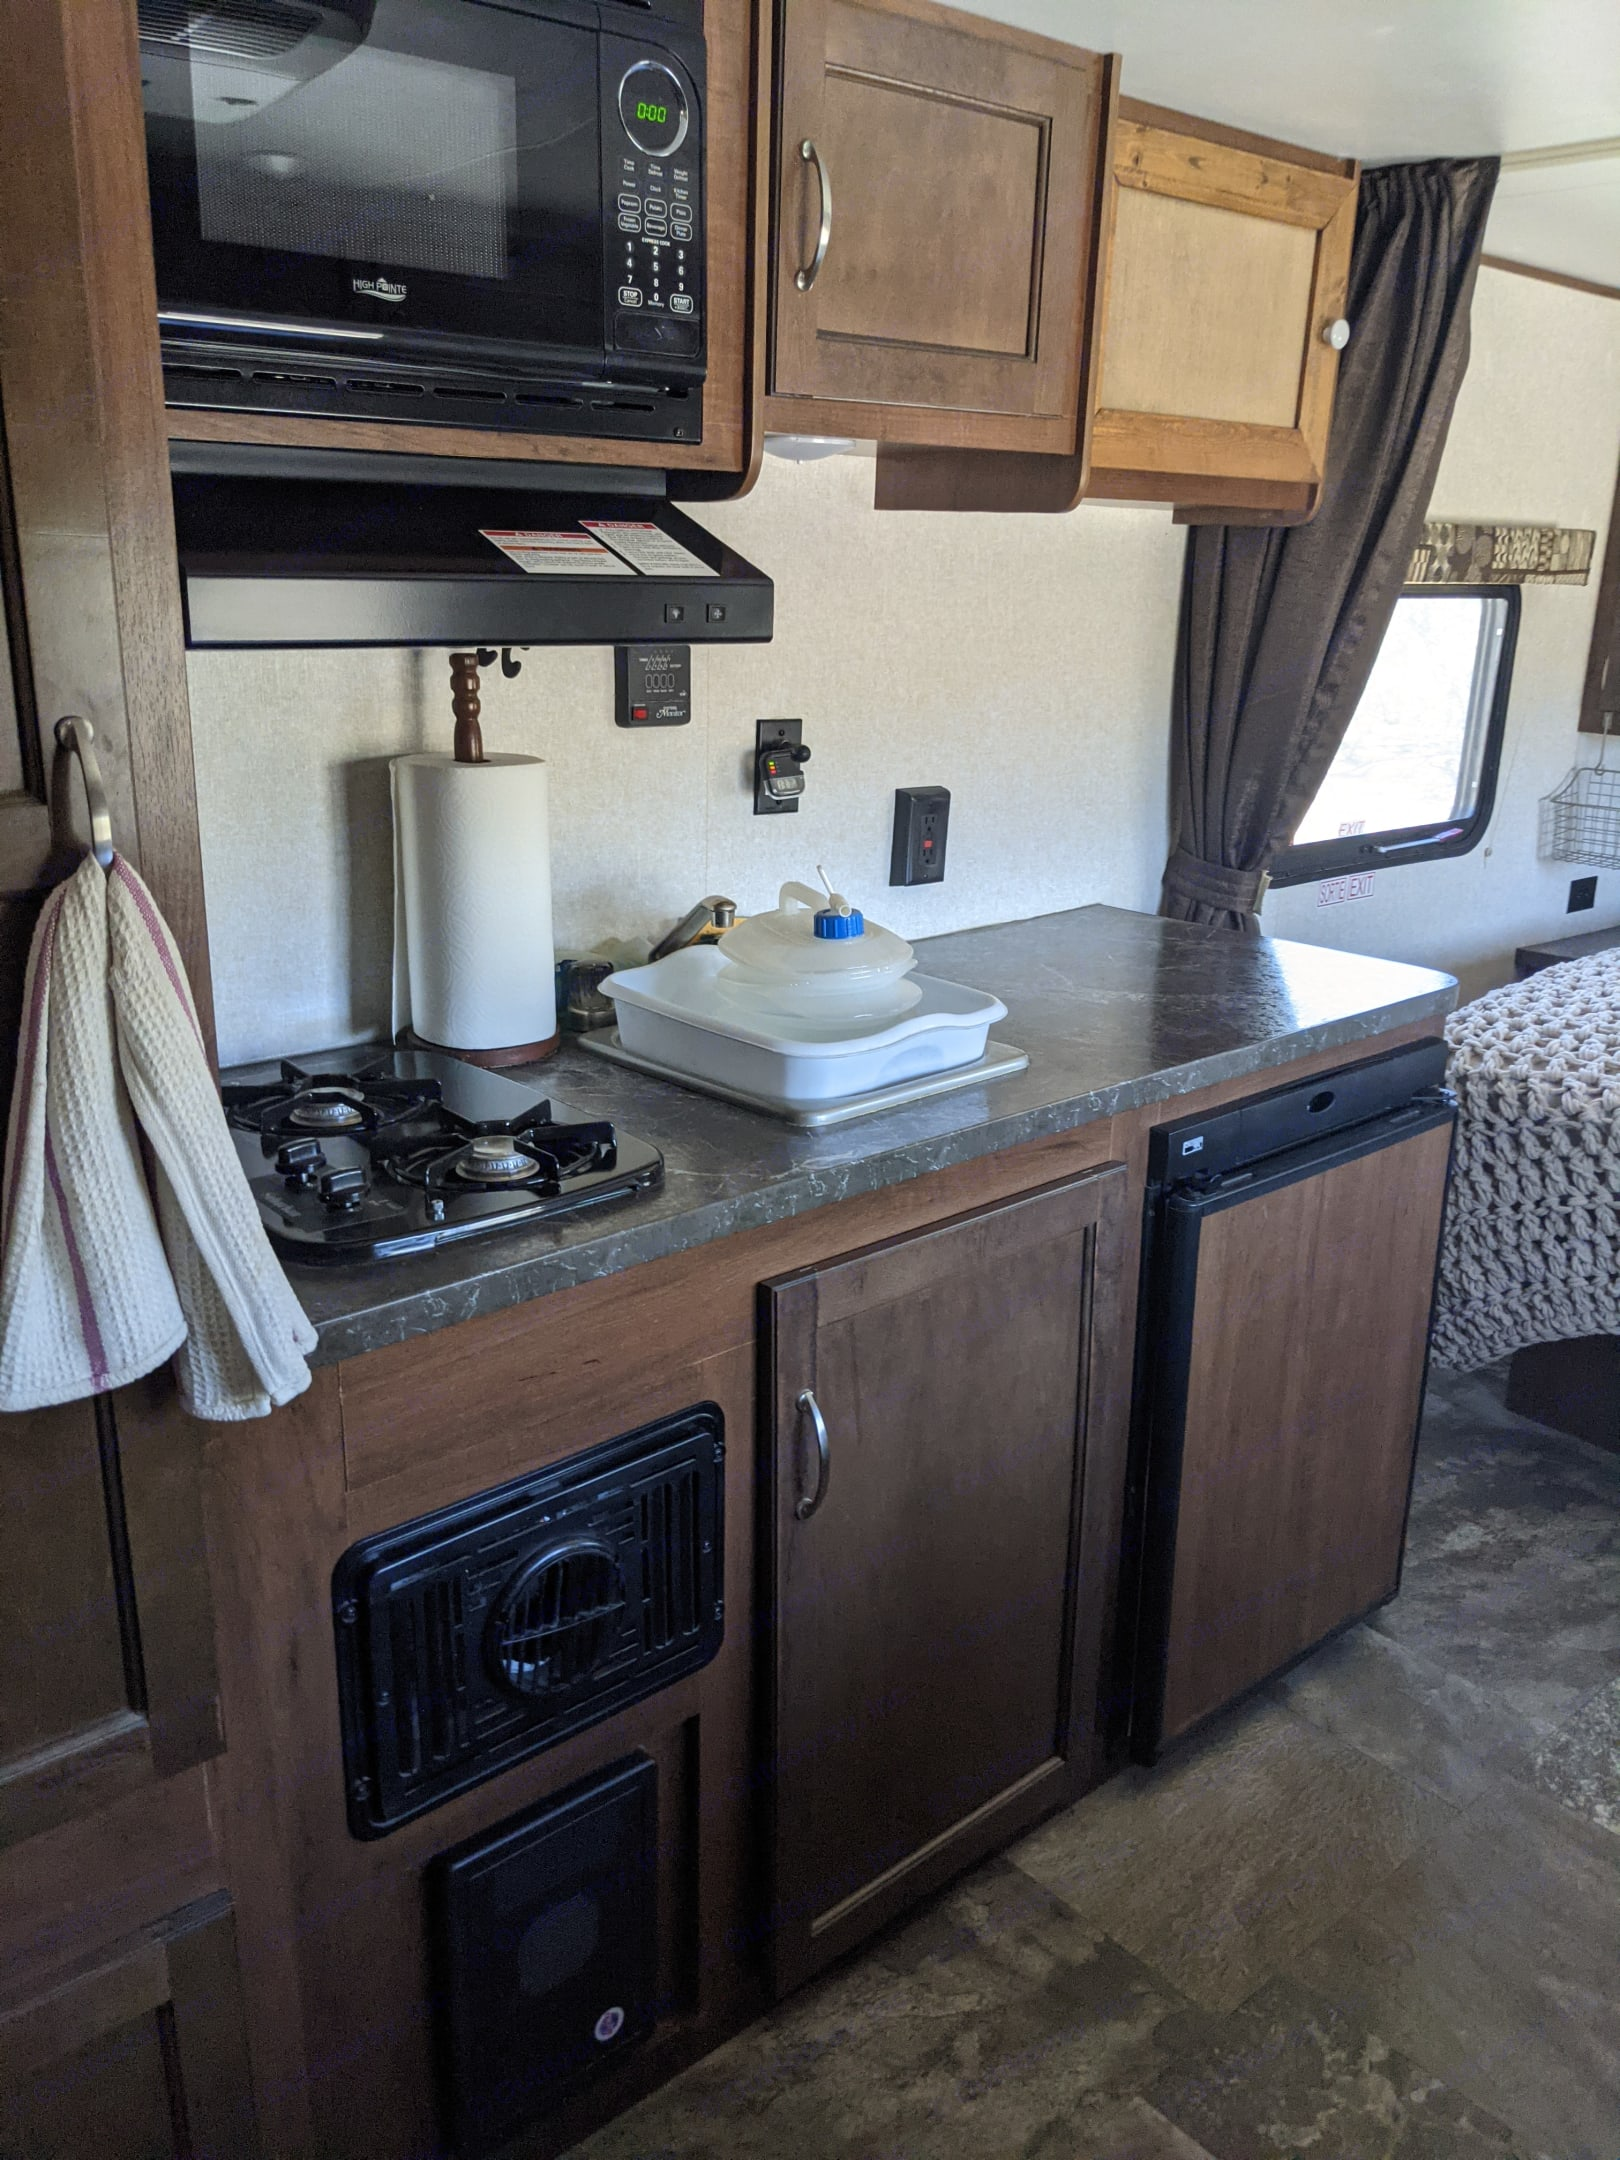 Includes 2-buner gas stove with vent hood, refrigerator, sink and storage.. Jayco Jay Flight 2017